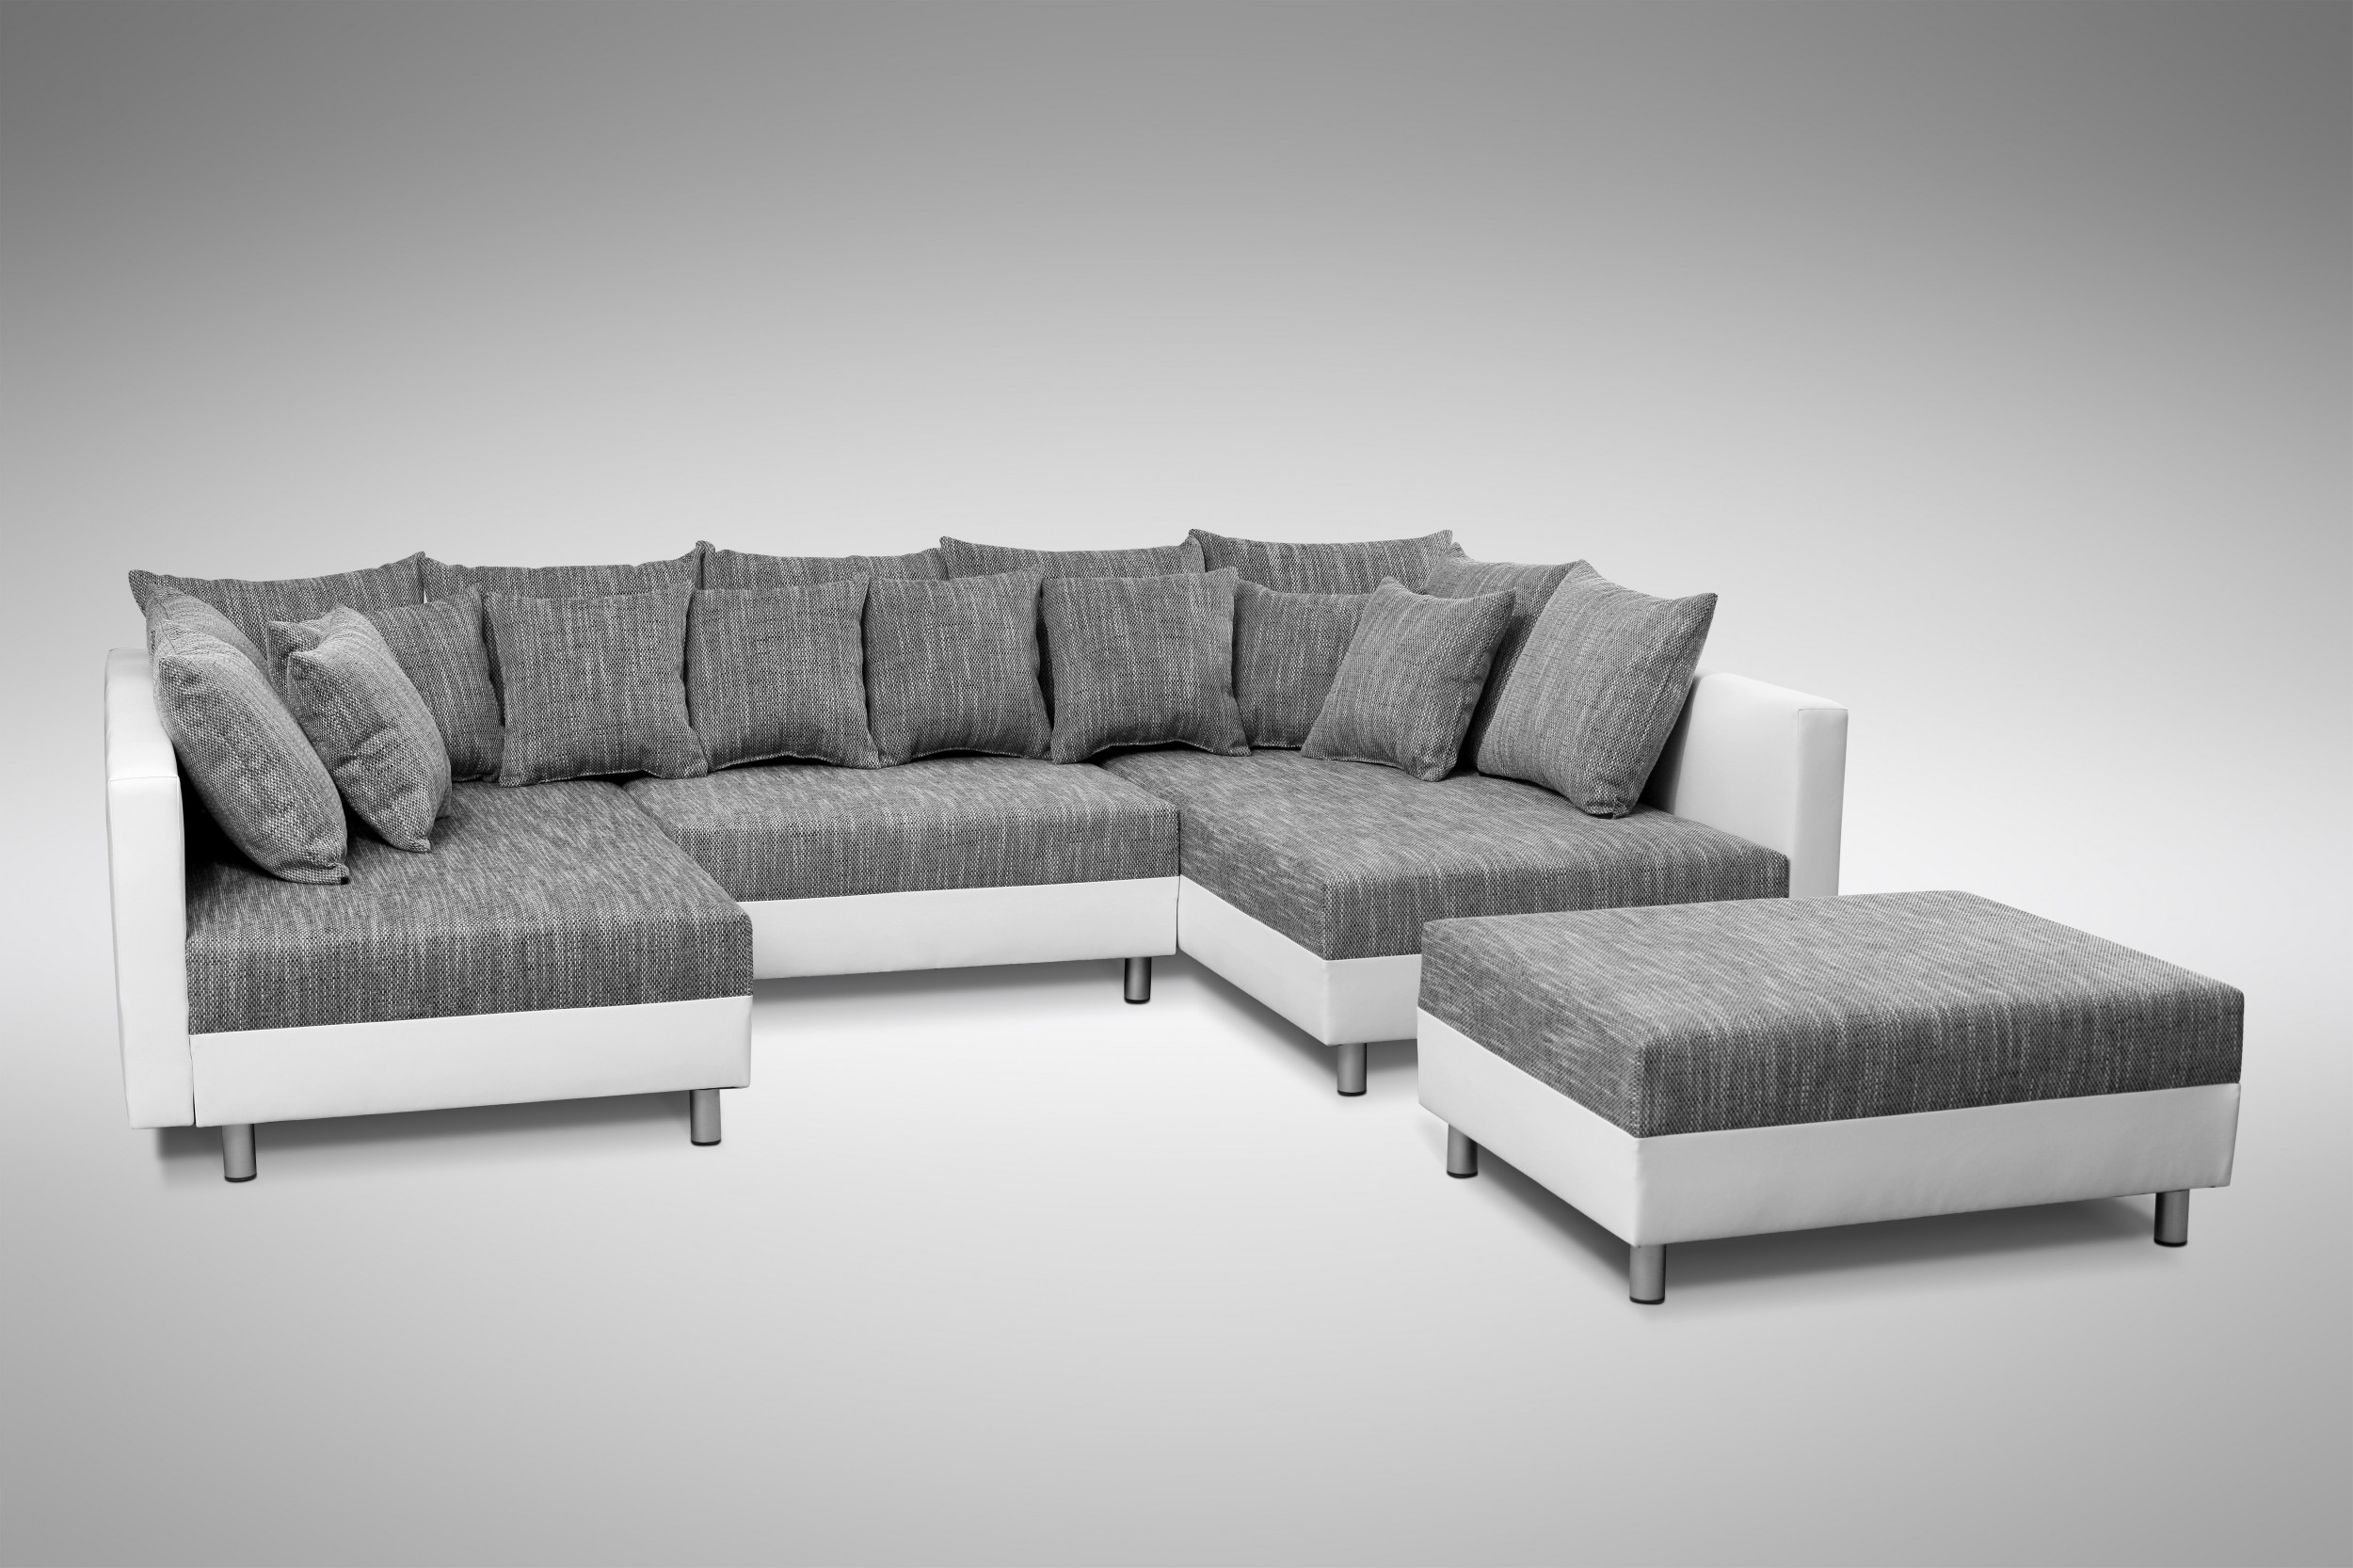 Couch Hocker Sofa Couch Ecksofa Eckcouch In Weiss Hellgrau Eckcouch